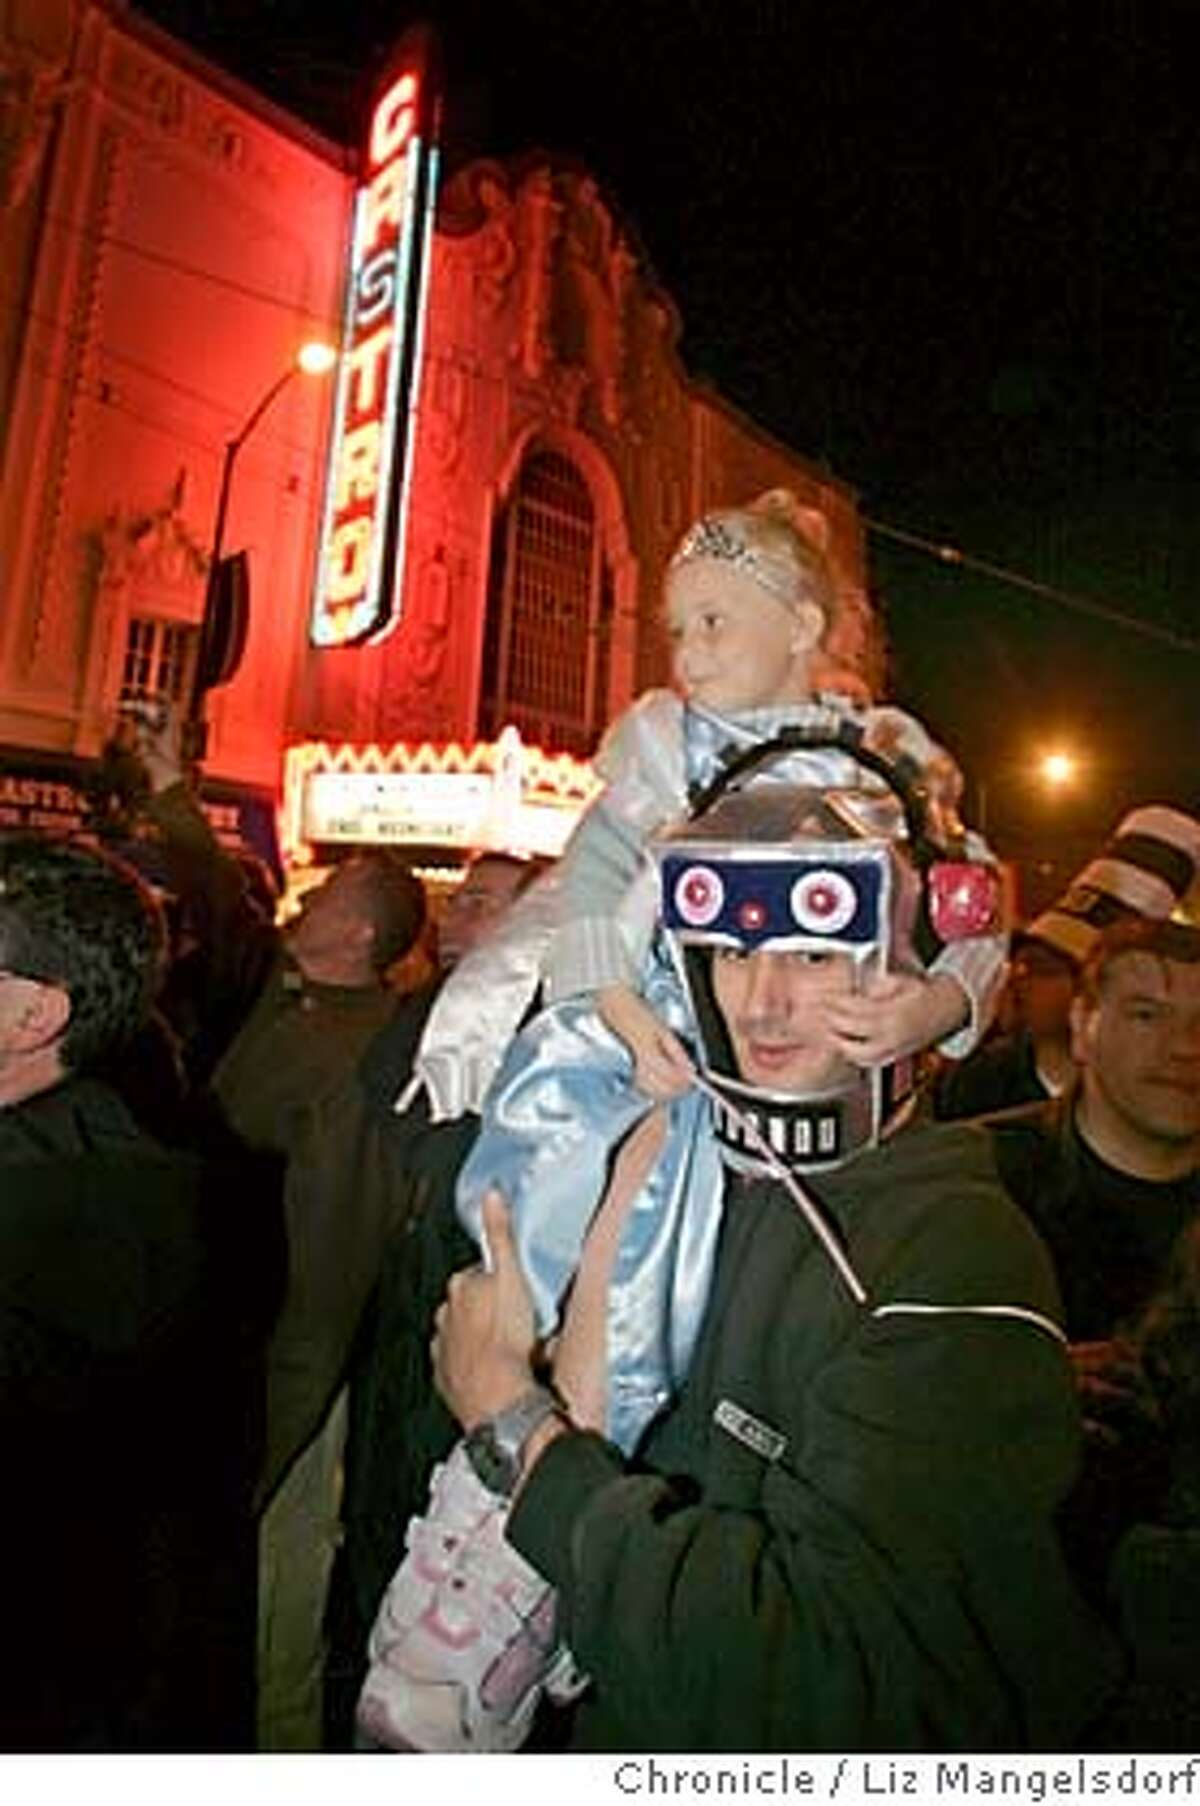 castro039_lm.JPG Event on 10/31/04 in San Francisco. Tourist's from Paris, France, Paul Maolec and his daughter Enora Morvant, 5, walk down Castro Street, with the Castro Theater in the background. The Castro on halloween night. Liz Mangelsdorf / The Chronicle MANDATORY CREDIT FOR PHOTOG AND SF CHRONICLE/ -MAGS OUT Metro#Metro#Chronicle#11/1/2004#ALL#5star-dot##0422443385